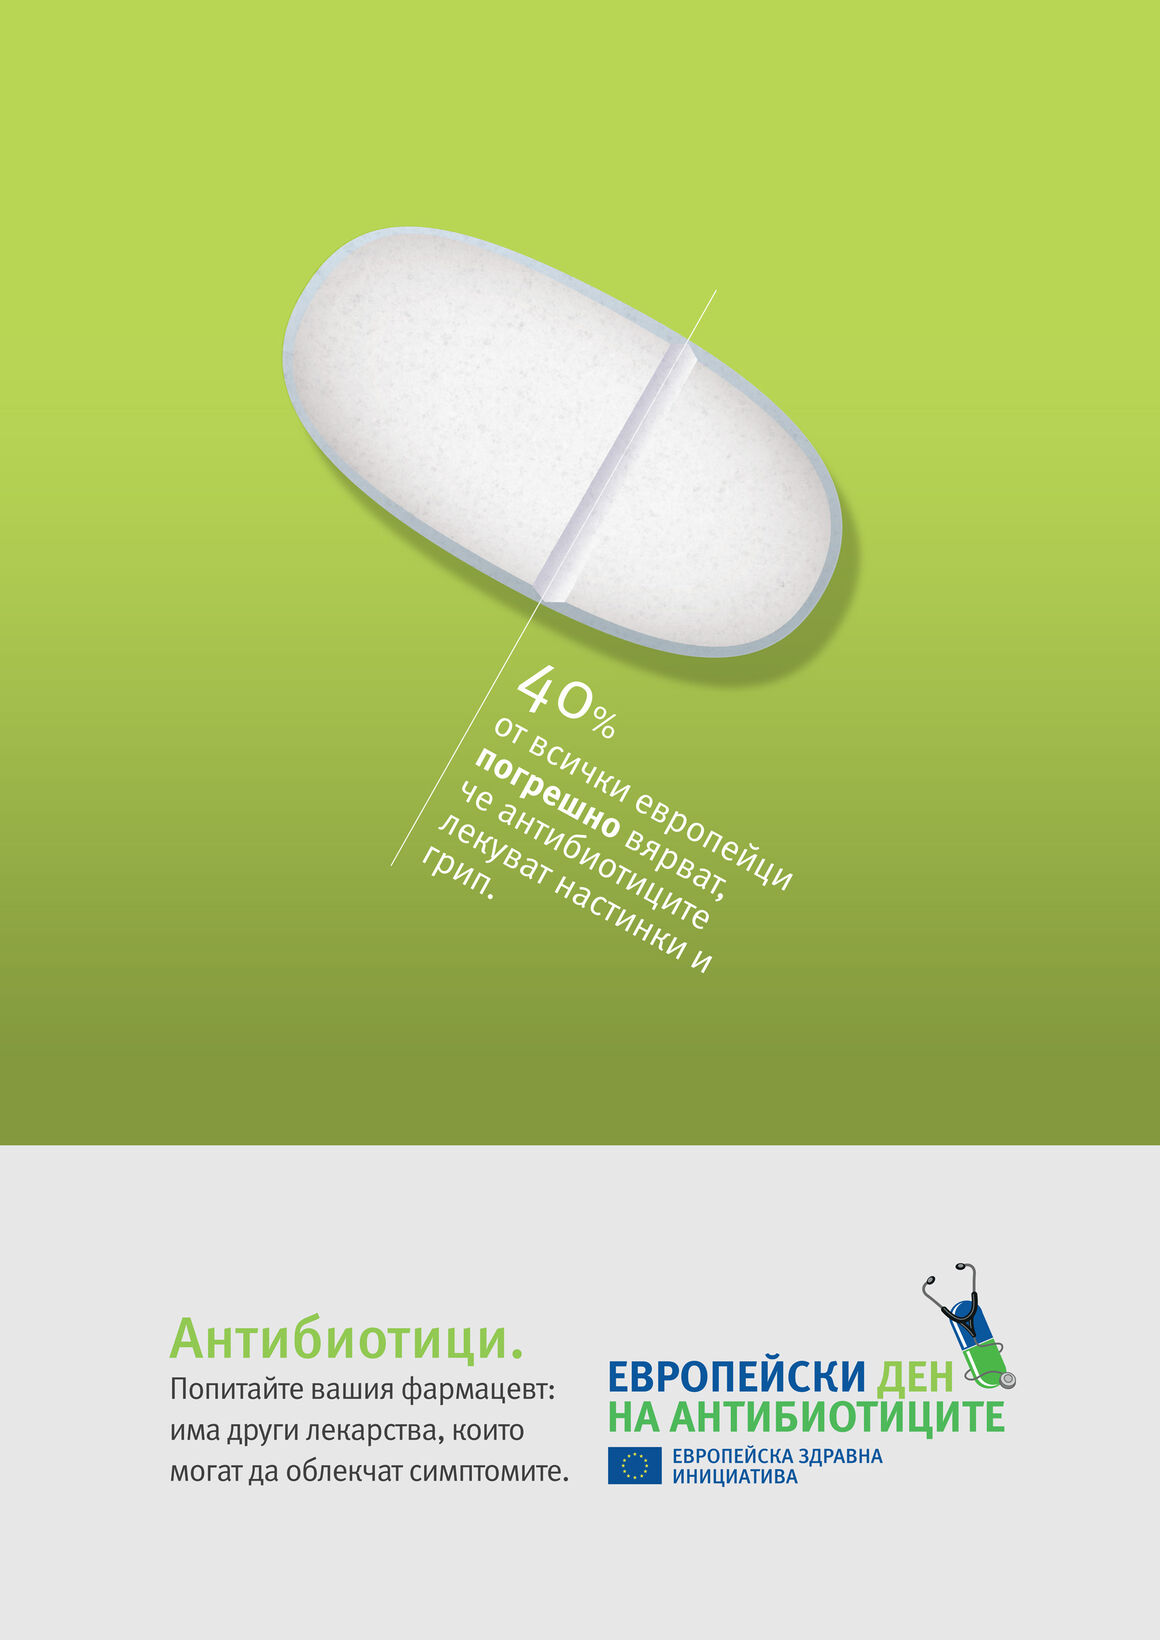 EAAD-2014-antibiotics-self-medication-poster-1-3BG